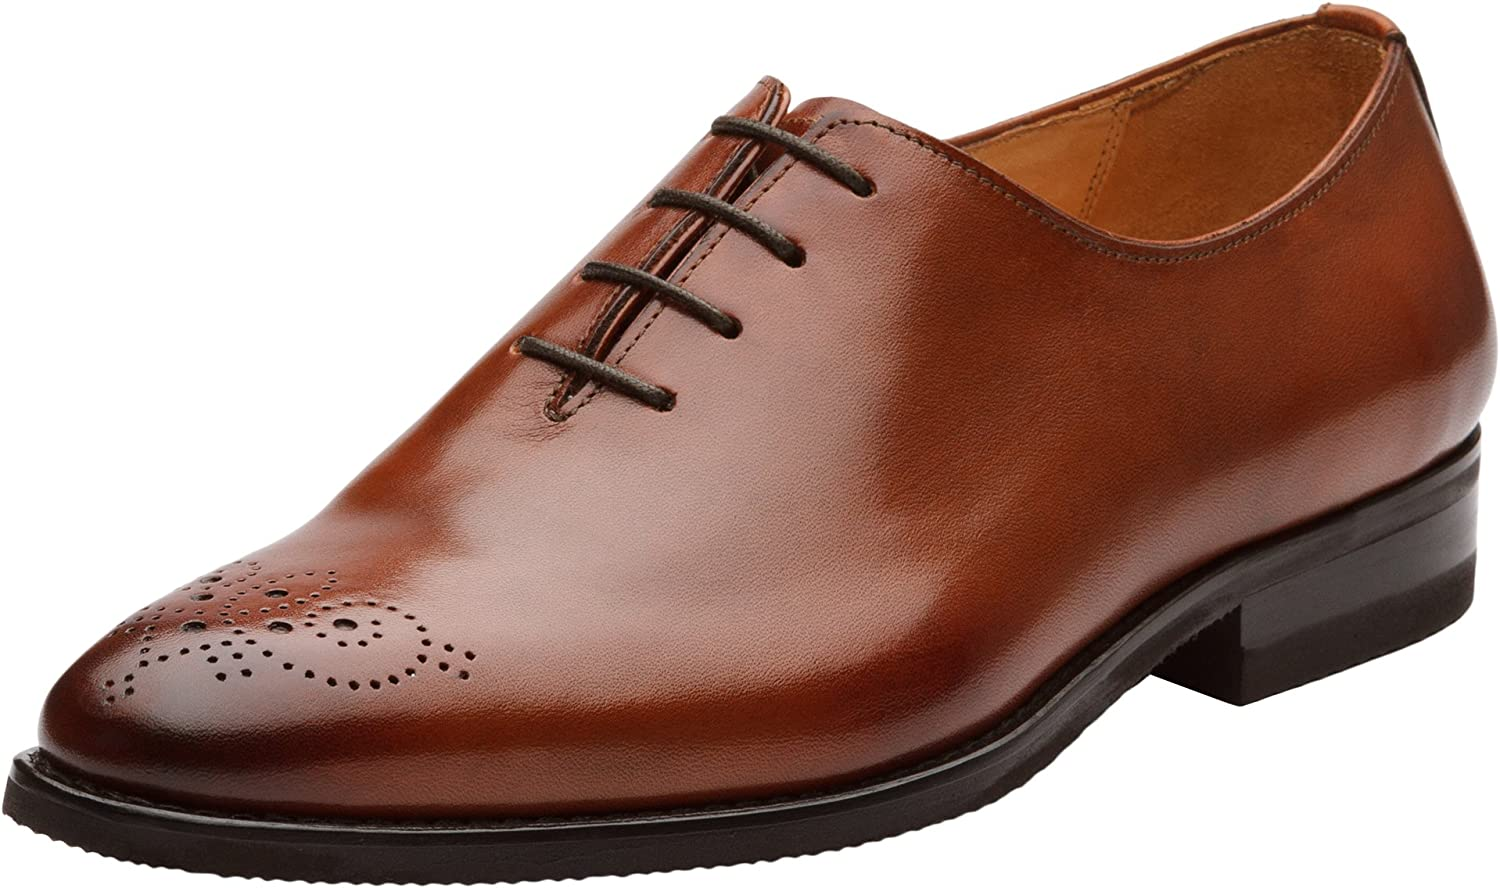 Dapper shoes Co. Handcrafted Genuine Leather Men's Classic Wholecut Oxford shoes